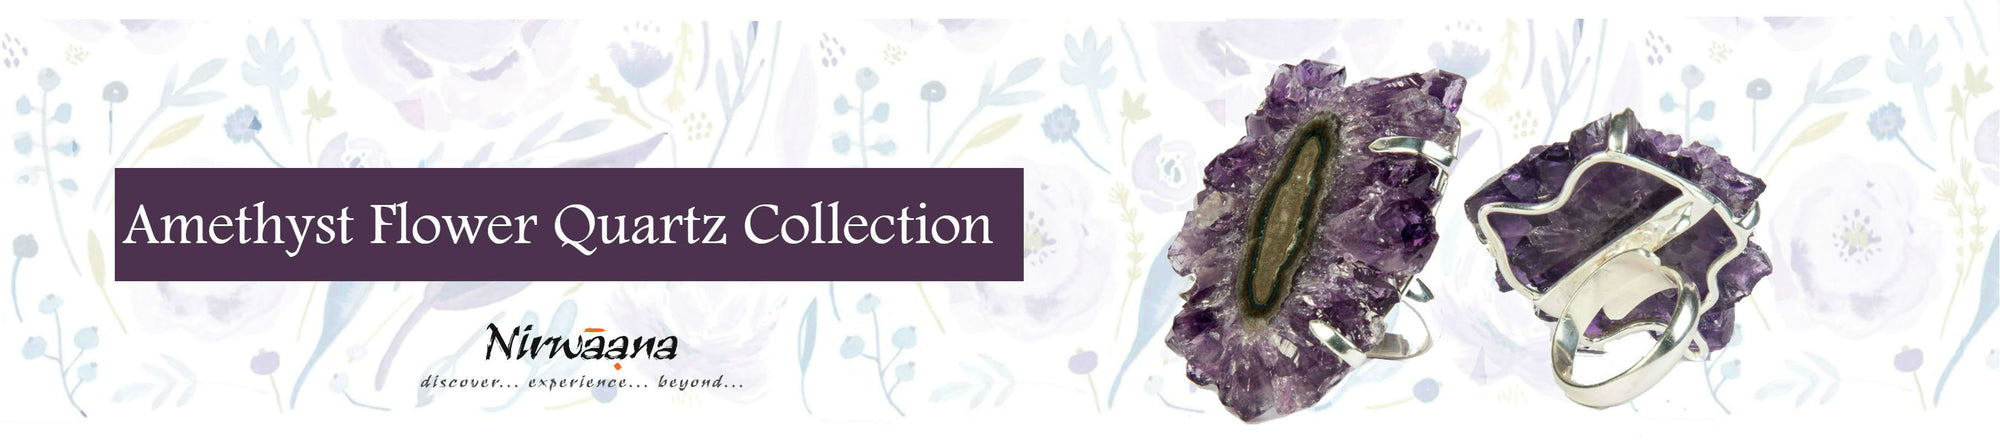 Nirwaana Amethyst flower quartz collection